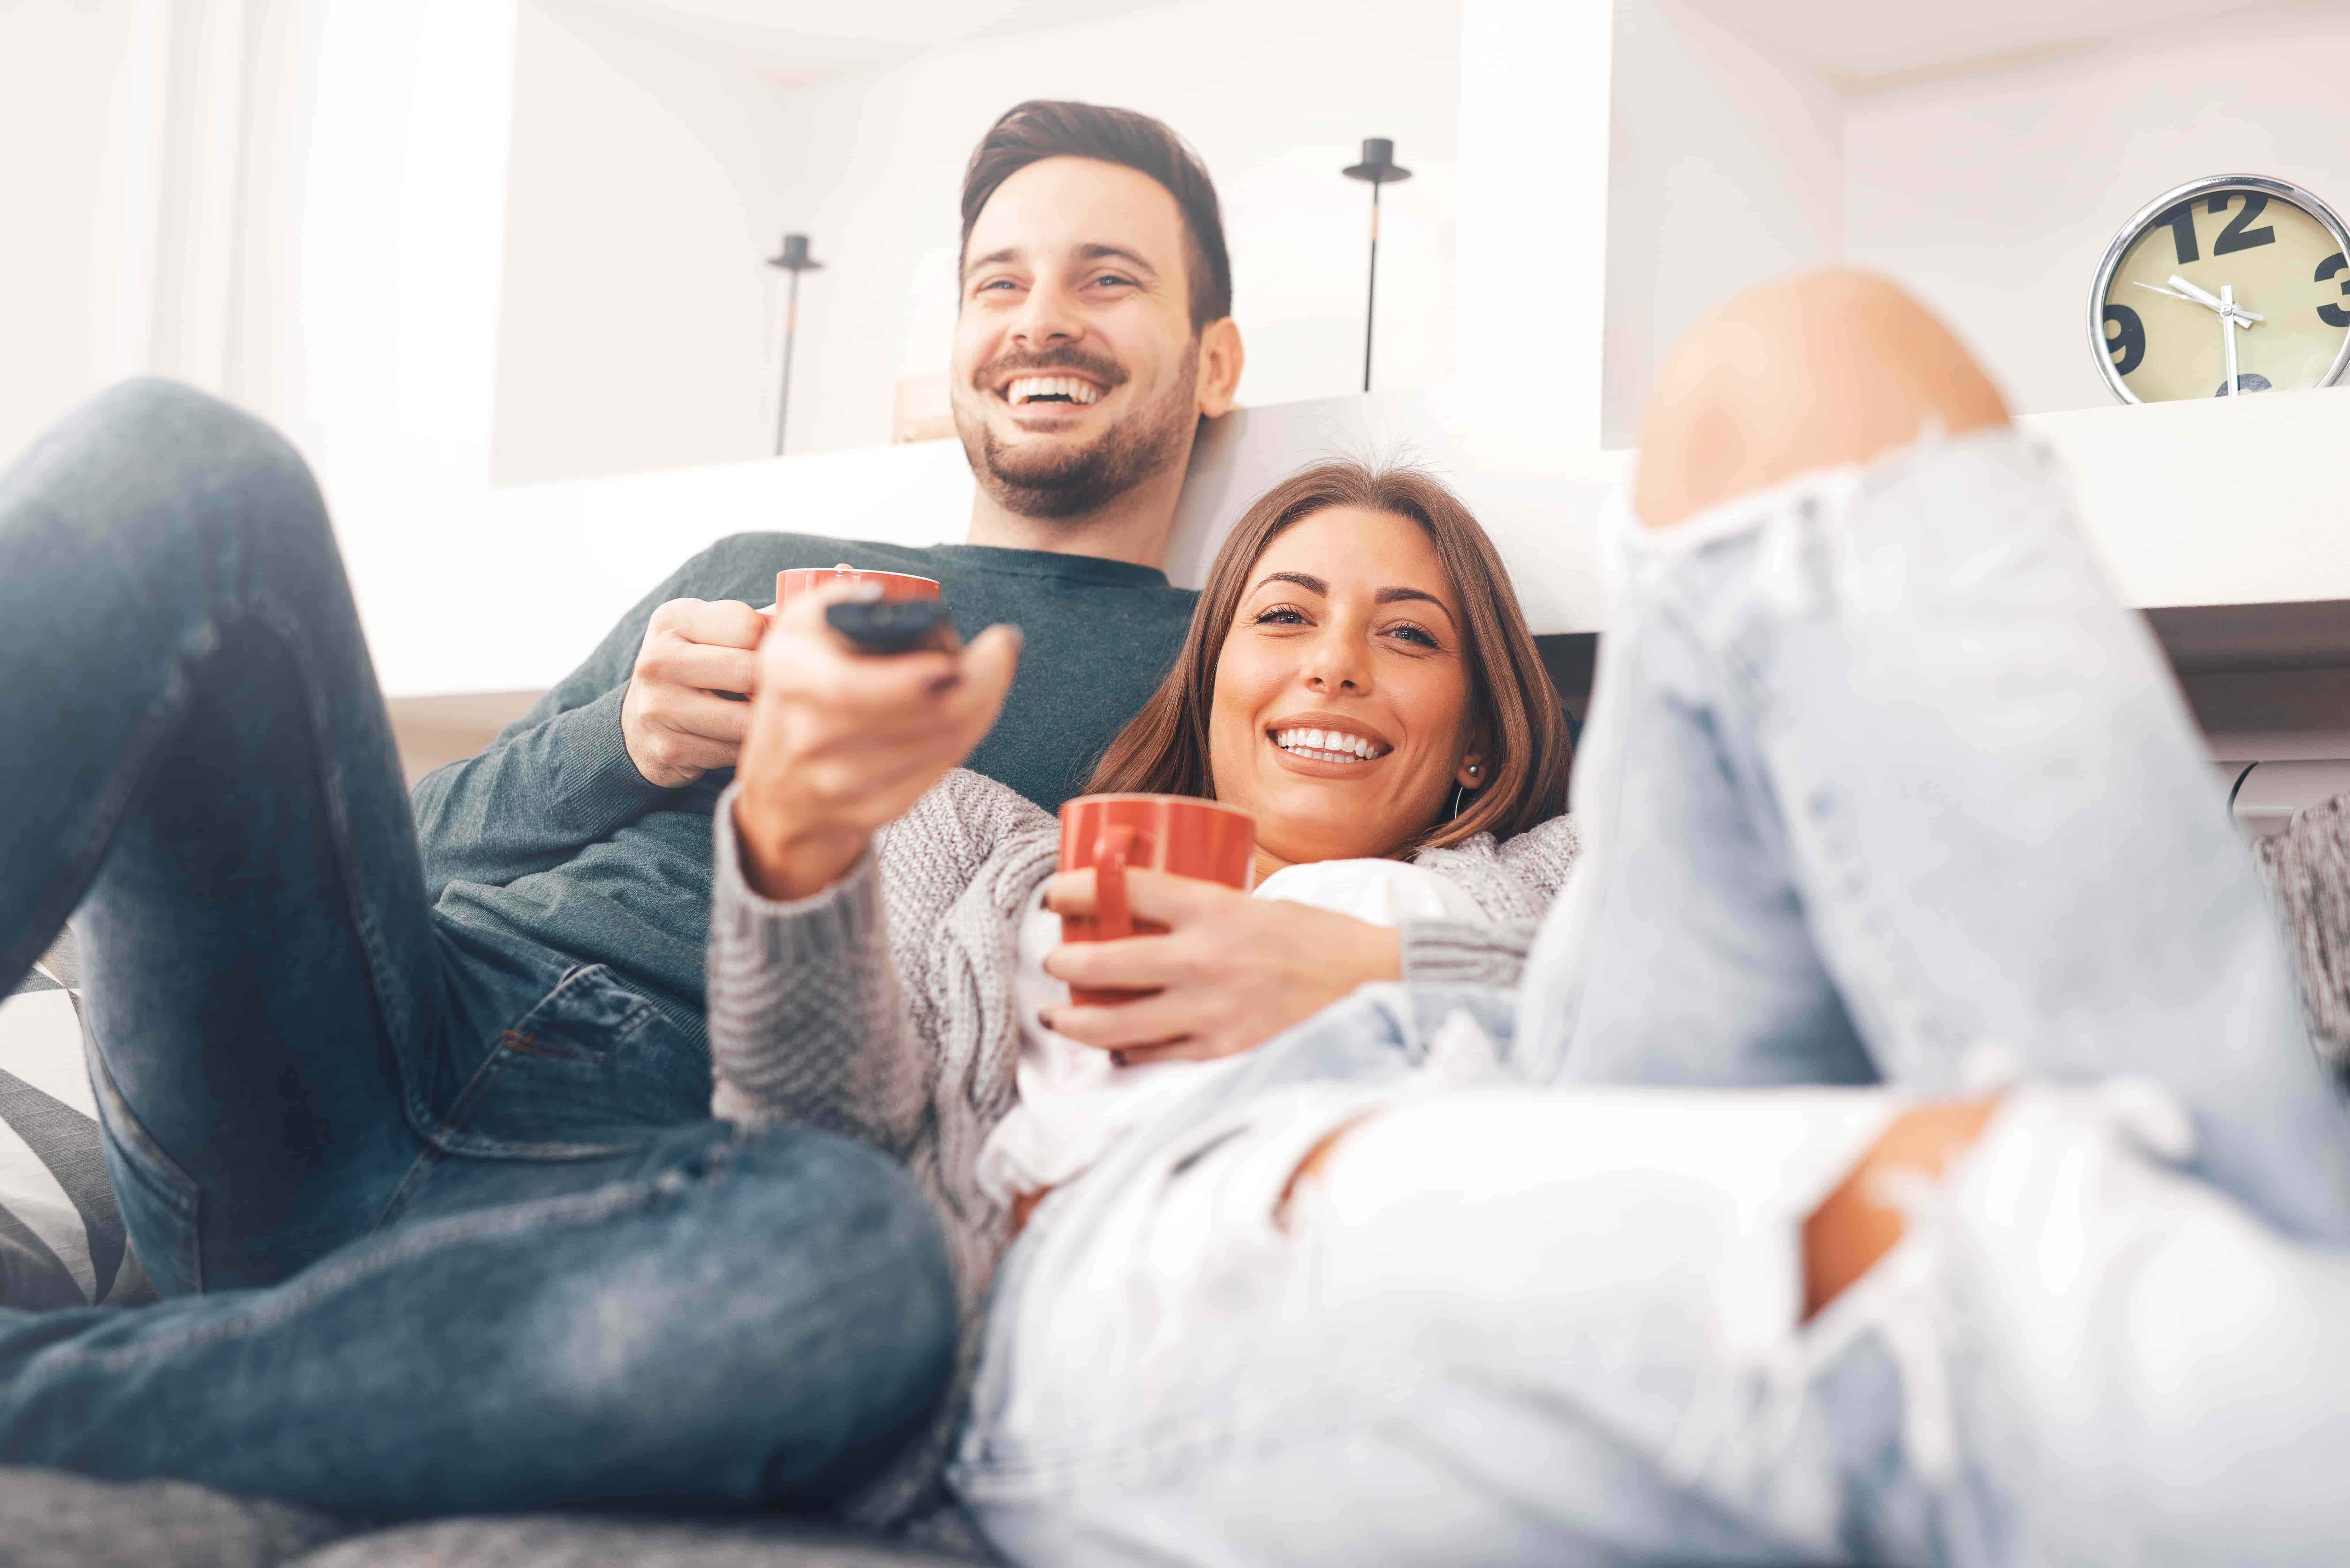 A young couple reclines while smiling on their couch, with remote control poised to choose which TV program to watch